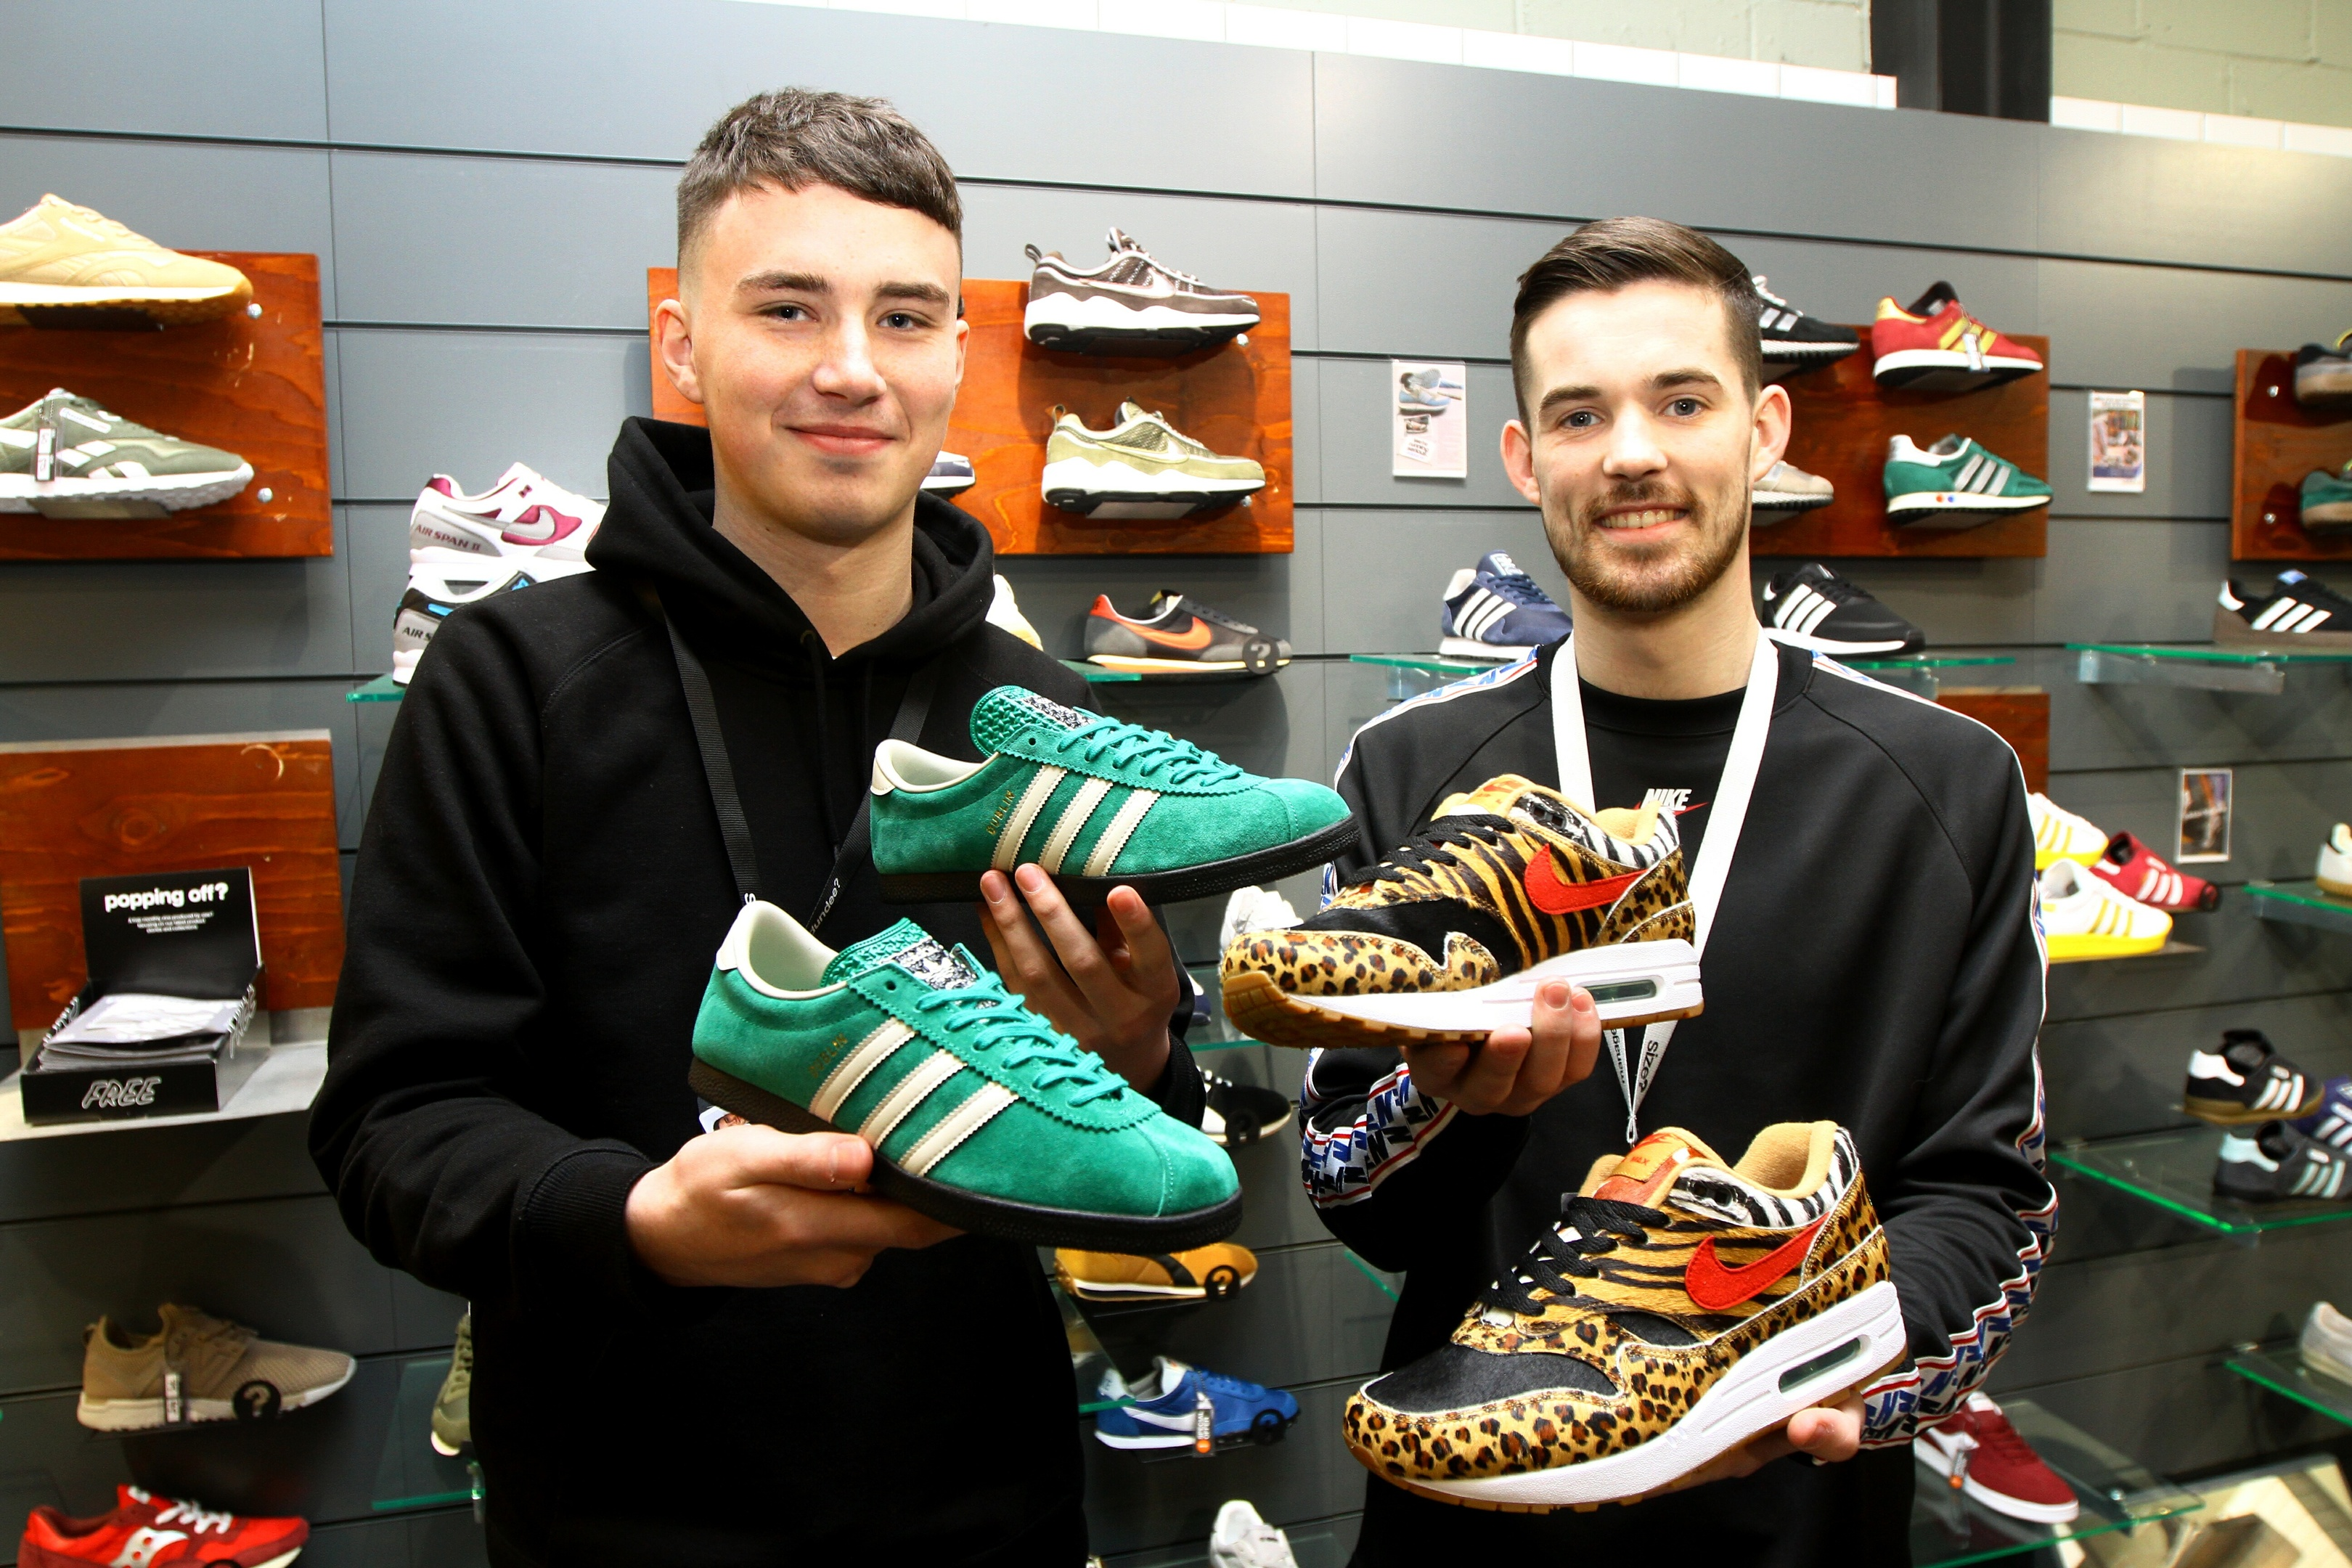 With the limited edition trainers Lloyd Morrison, left, holding the Adidas Dublin trainers, and Chris Brash holding the Nike Atmos Safaris, in Size in Dundee.